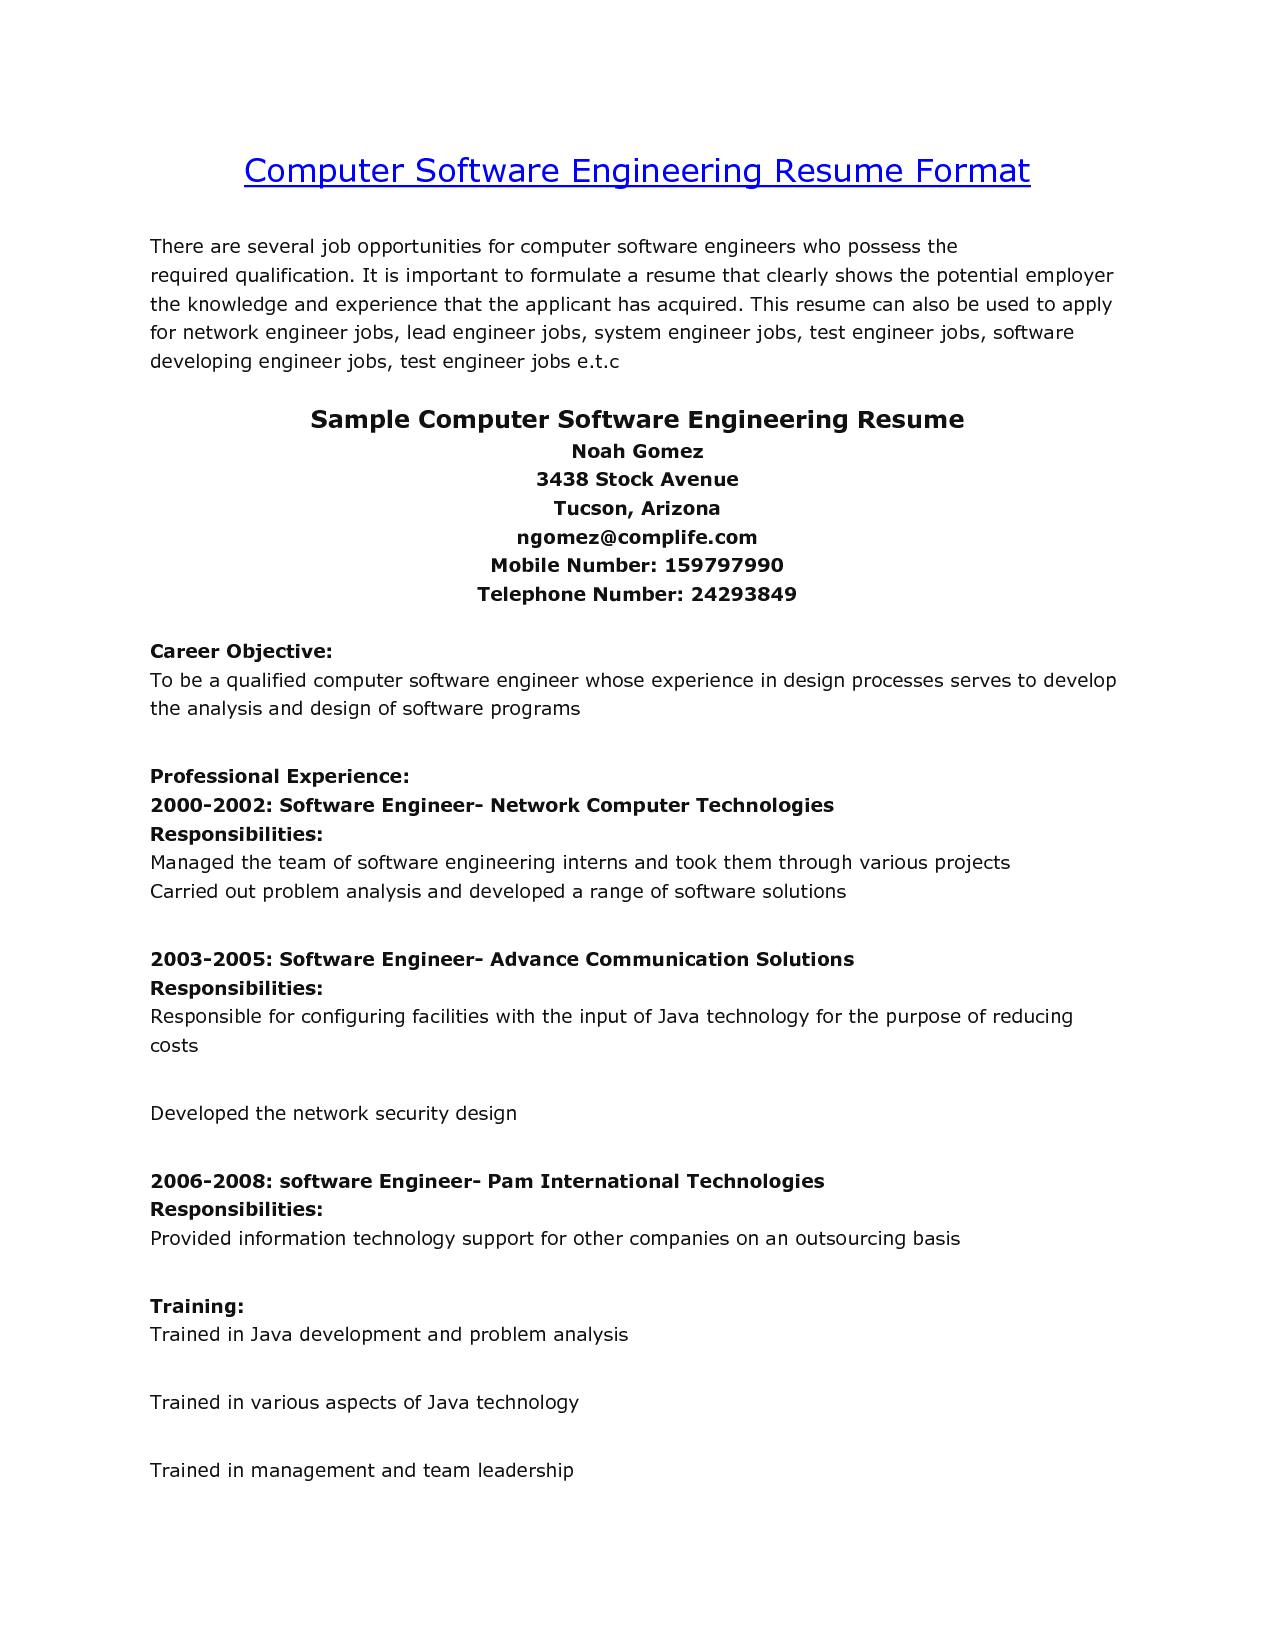 sample computer engineering resume httpwwwresumecareerinfosample - Objective For Engineering Resume 2